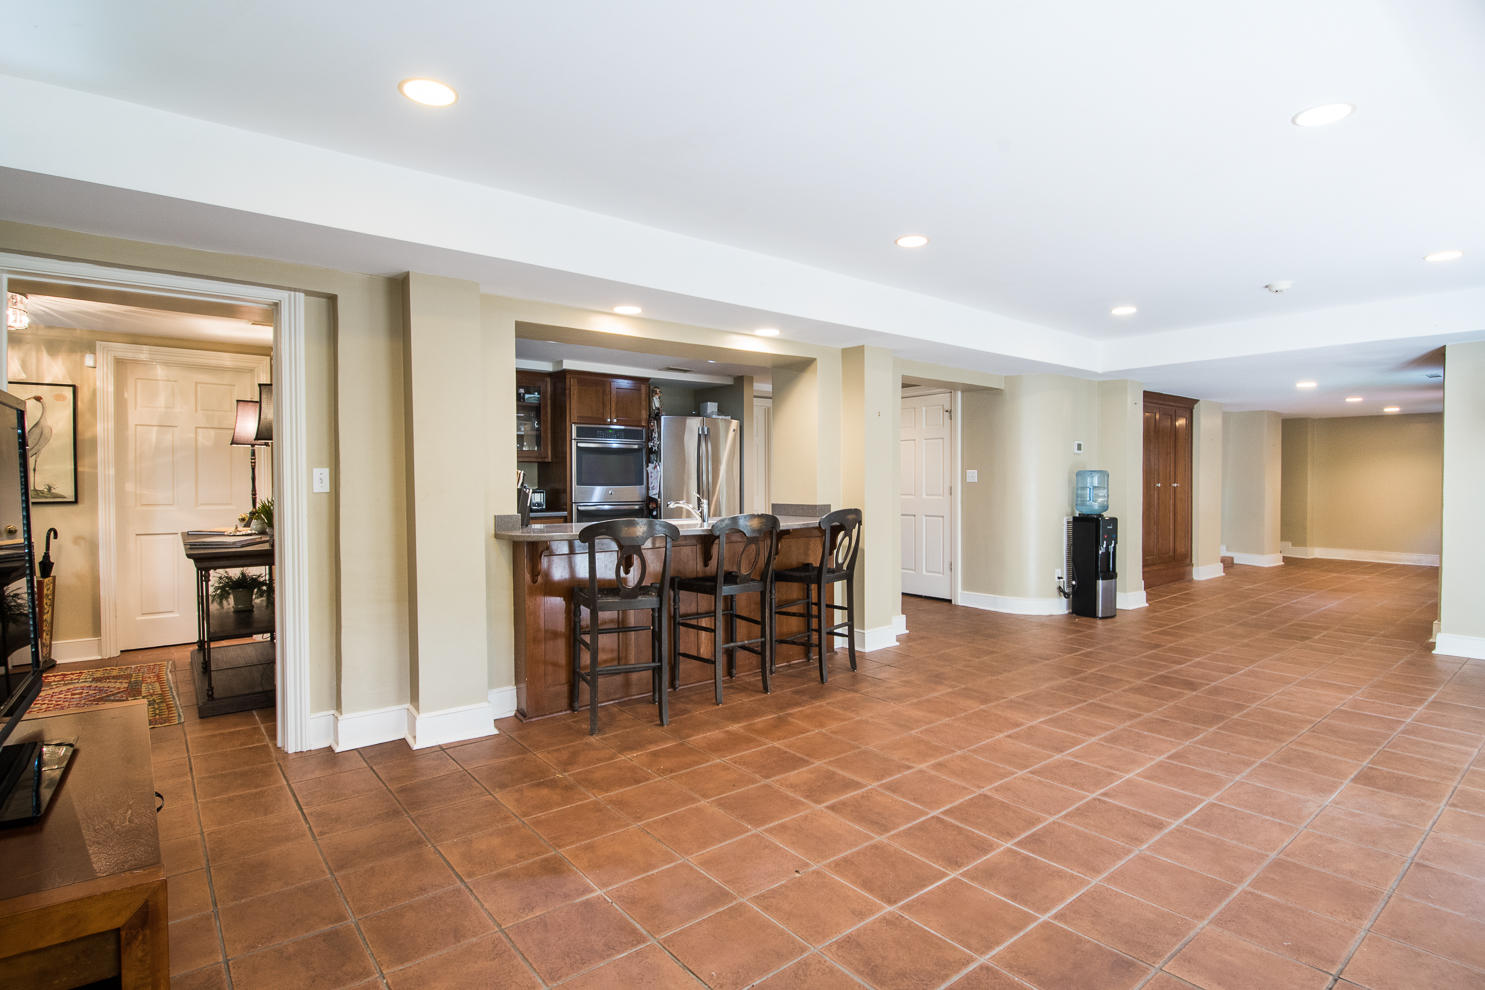 South of Broad Homes For Sale - 1 Prices, Charleston, SC - 45